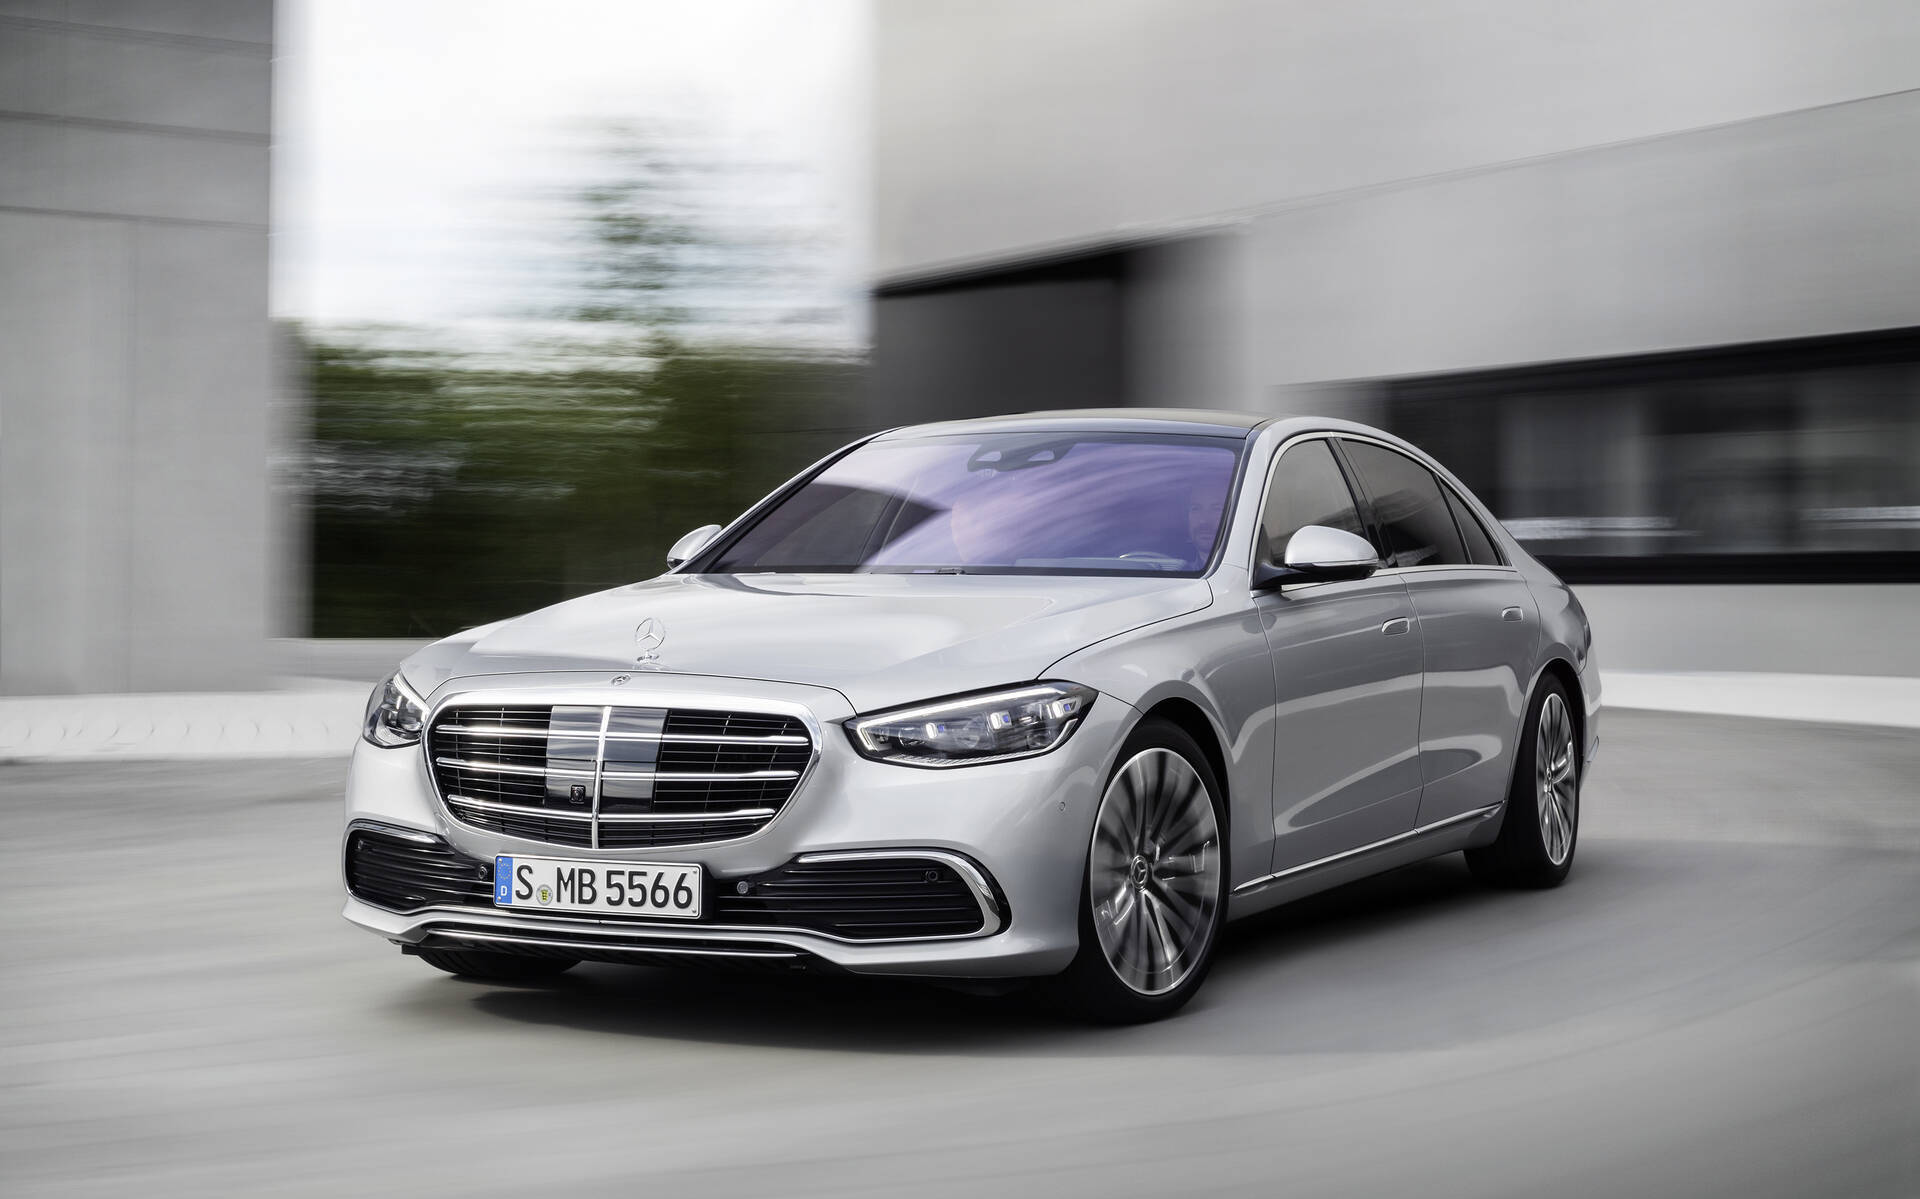 2021 Mercedes Benz S Class News Reviews Picture Galleries And Videos The Car Guide